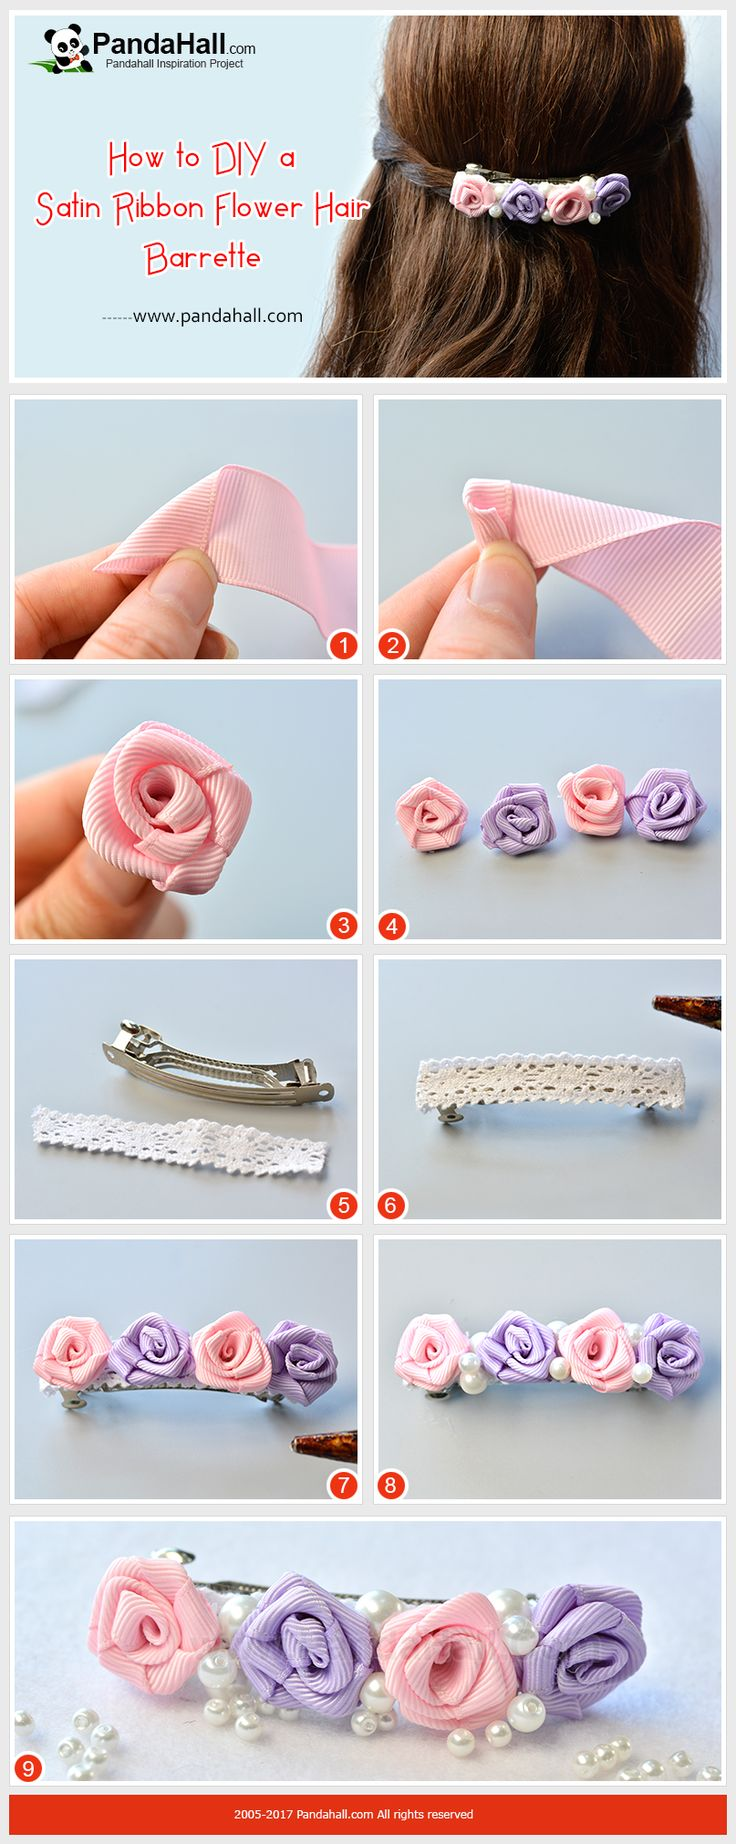 How to make Satin Ribbon Flower Hair Barrette With satin ribbons and some glass pearl beads, a hair barrette can be easily made in 6 minutes.